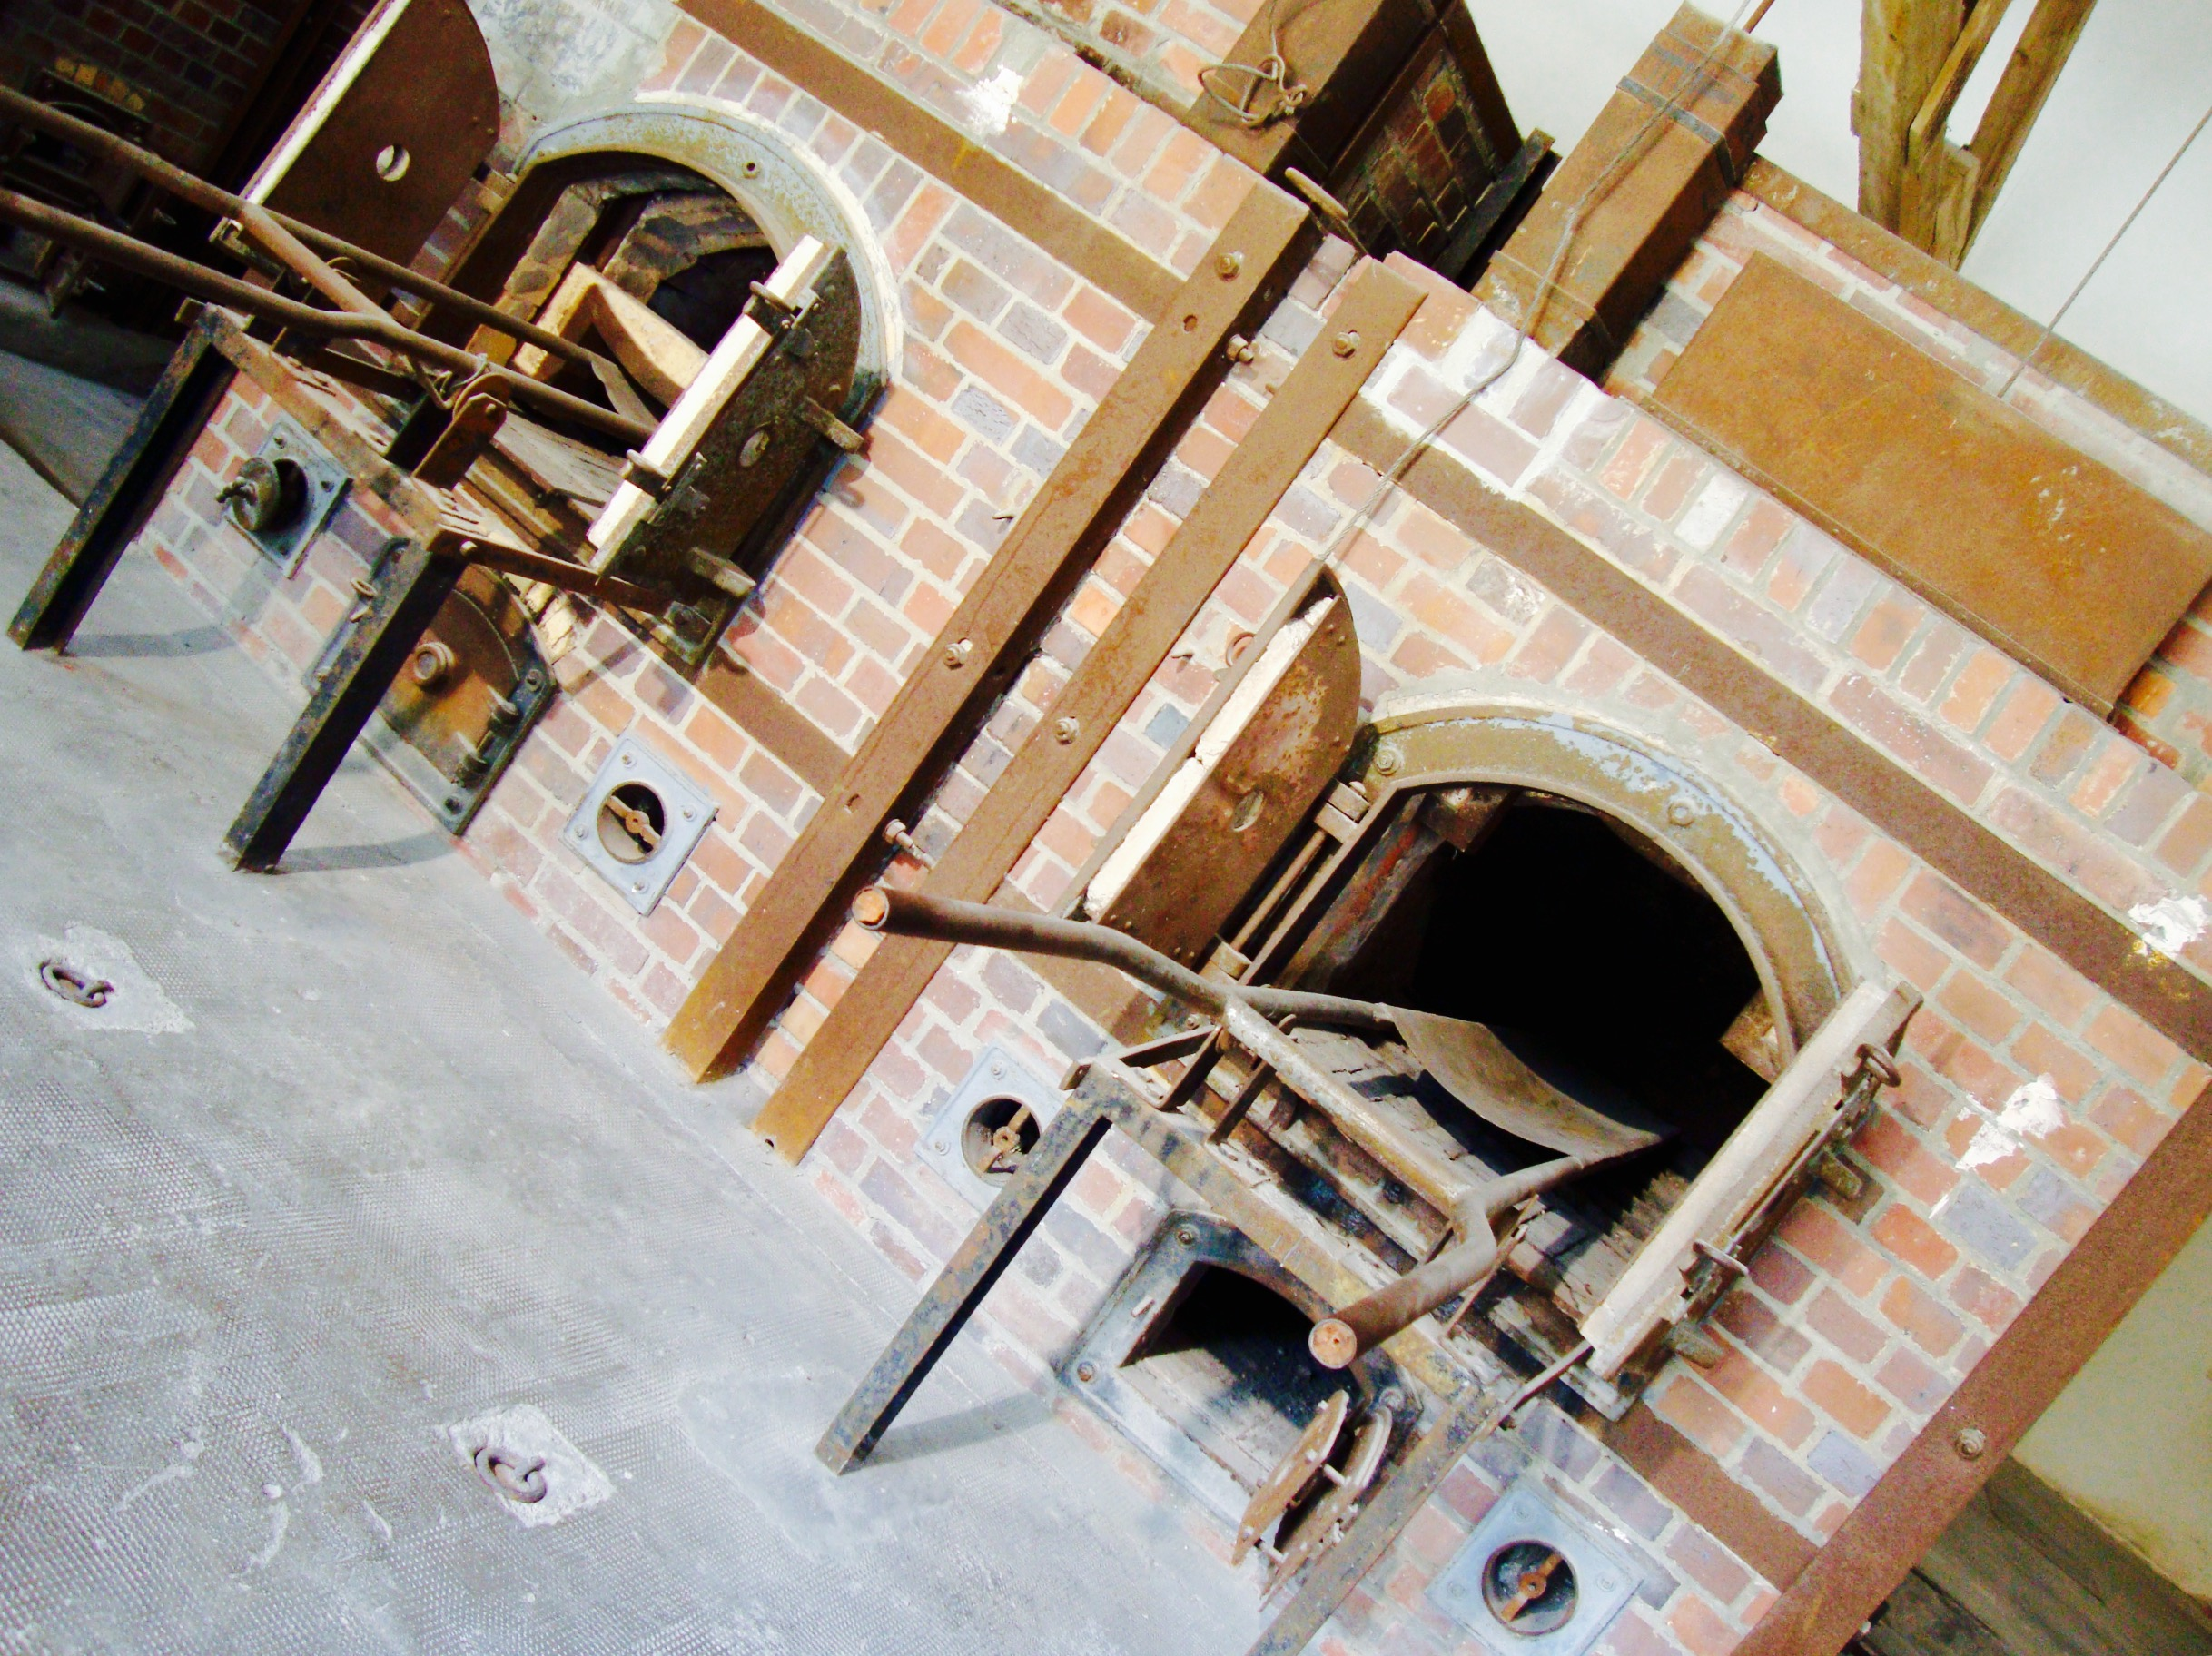 Large crematorium - it was erected between May 1942 and April 1943. it was to serve both as a killing and to remove the dead.